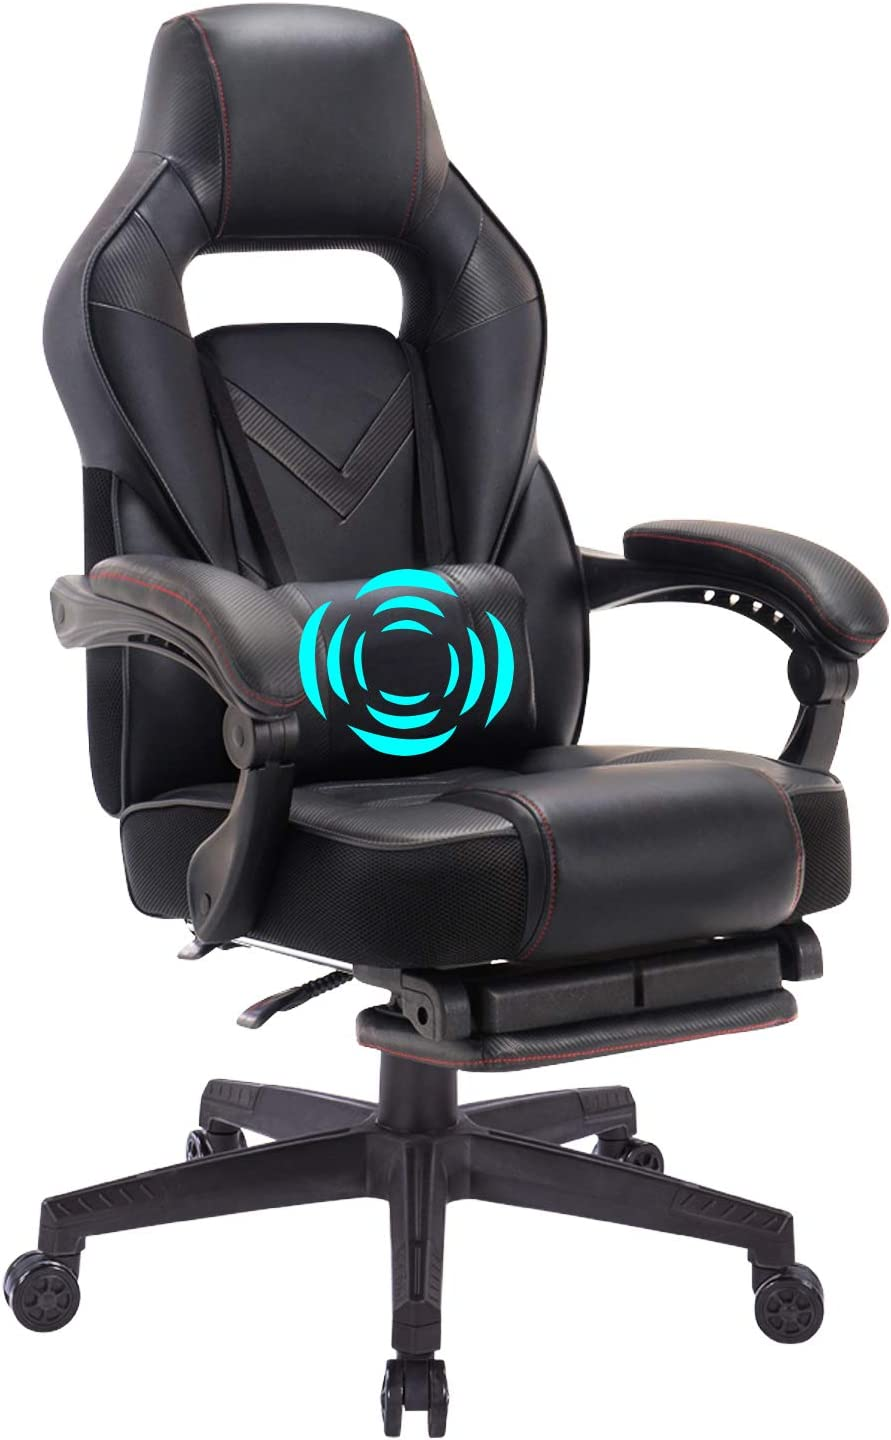 HEALGEN Reclining Gaming Chair with Adjustable Massage Lumbar Pillow and Footrest- Memory Foam PC Computer Racing Chair - Ergonomic High-Back Desk Office Chair (9015Black)